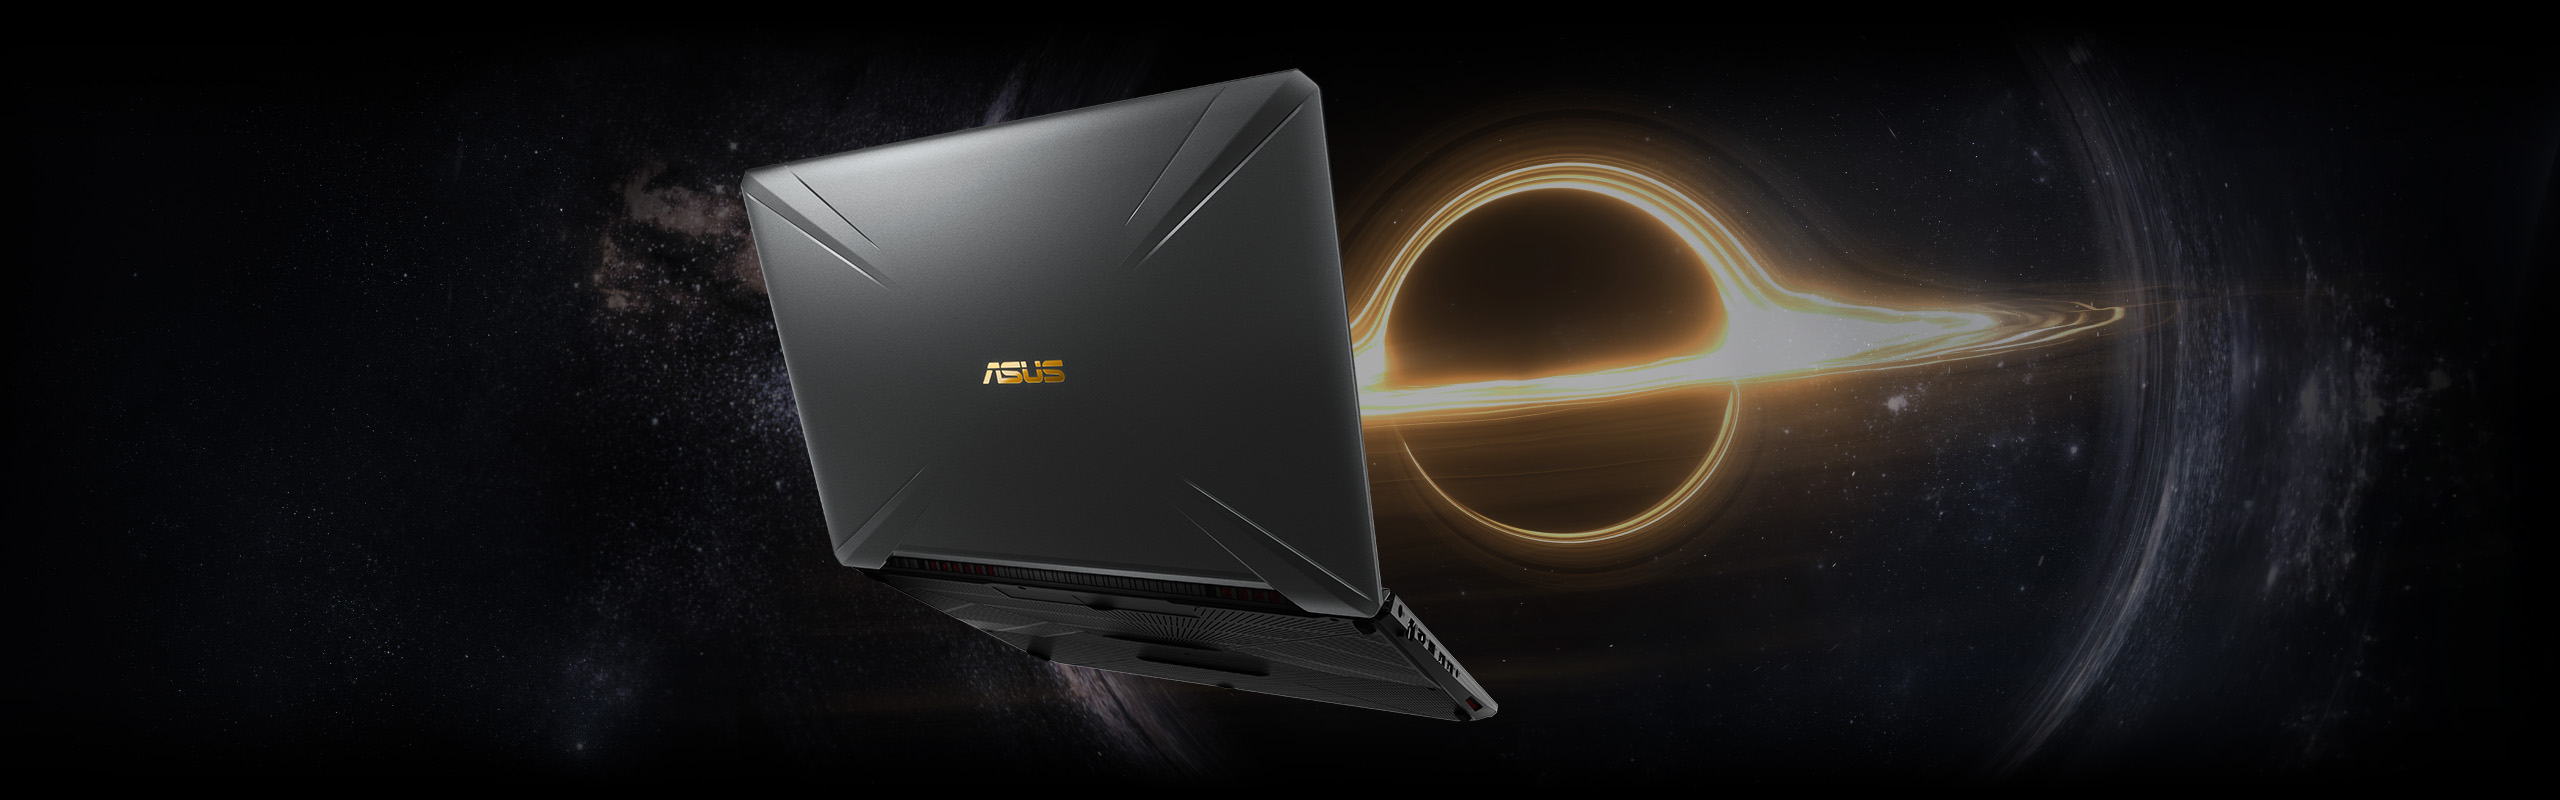 https://dlcdnimgs.asus.com/websites/global/products/AvskTToCFb8pJEDd/img/desktop/04_1.jpg